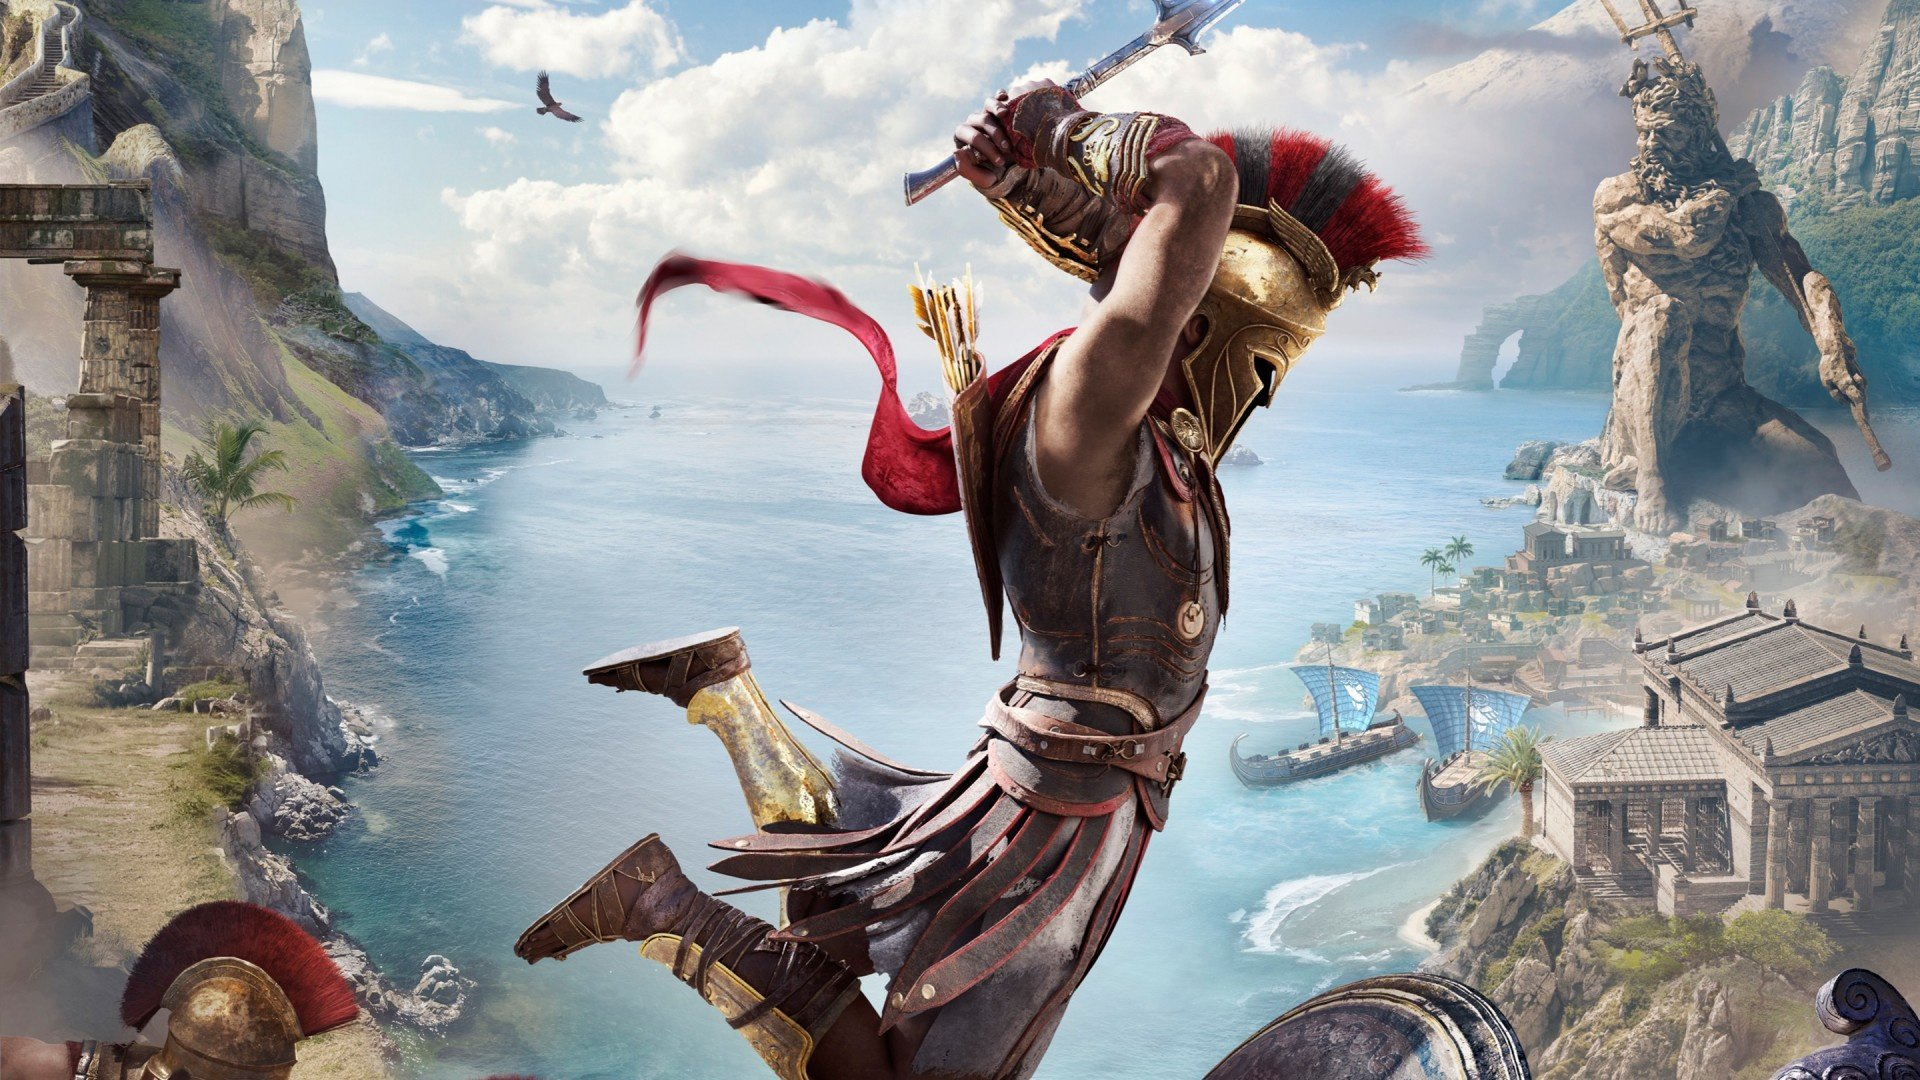 Assassin's Creed Odyssey's Final Atlantis DLC Gets a Gameplay Preview